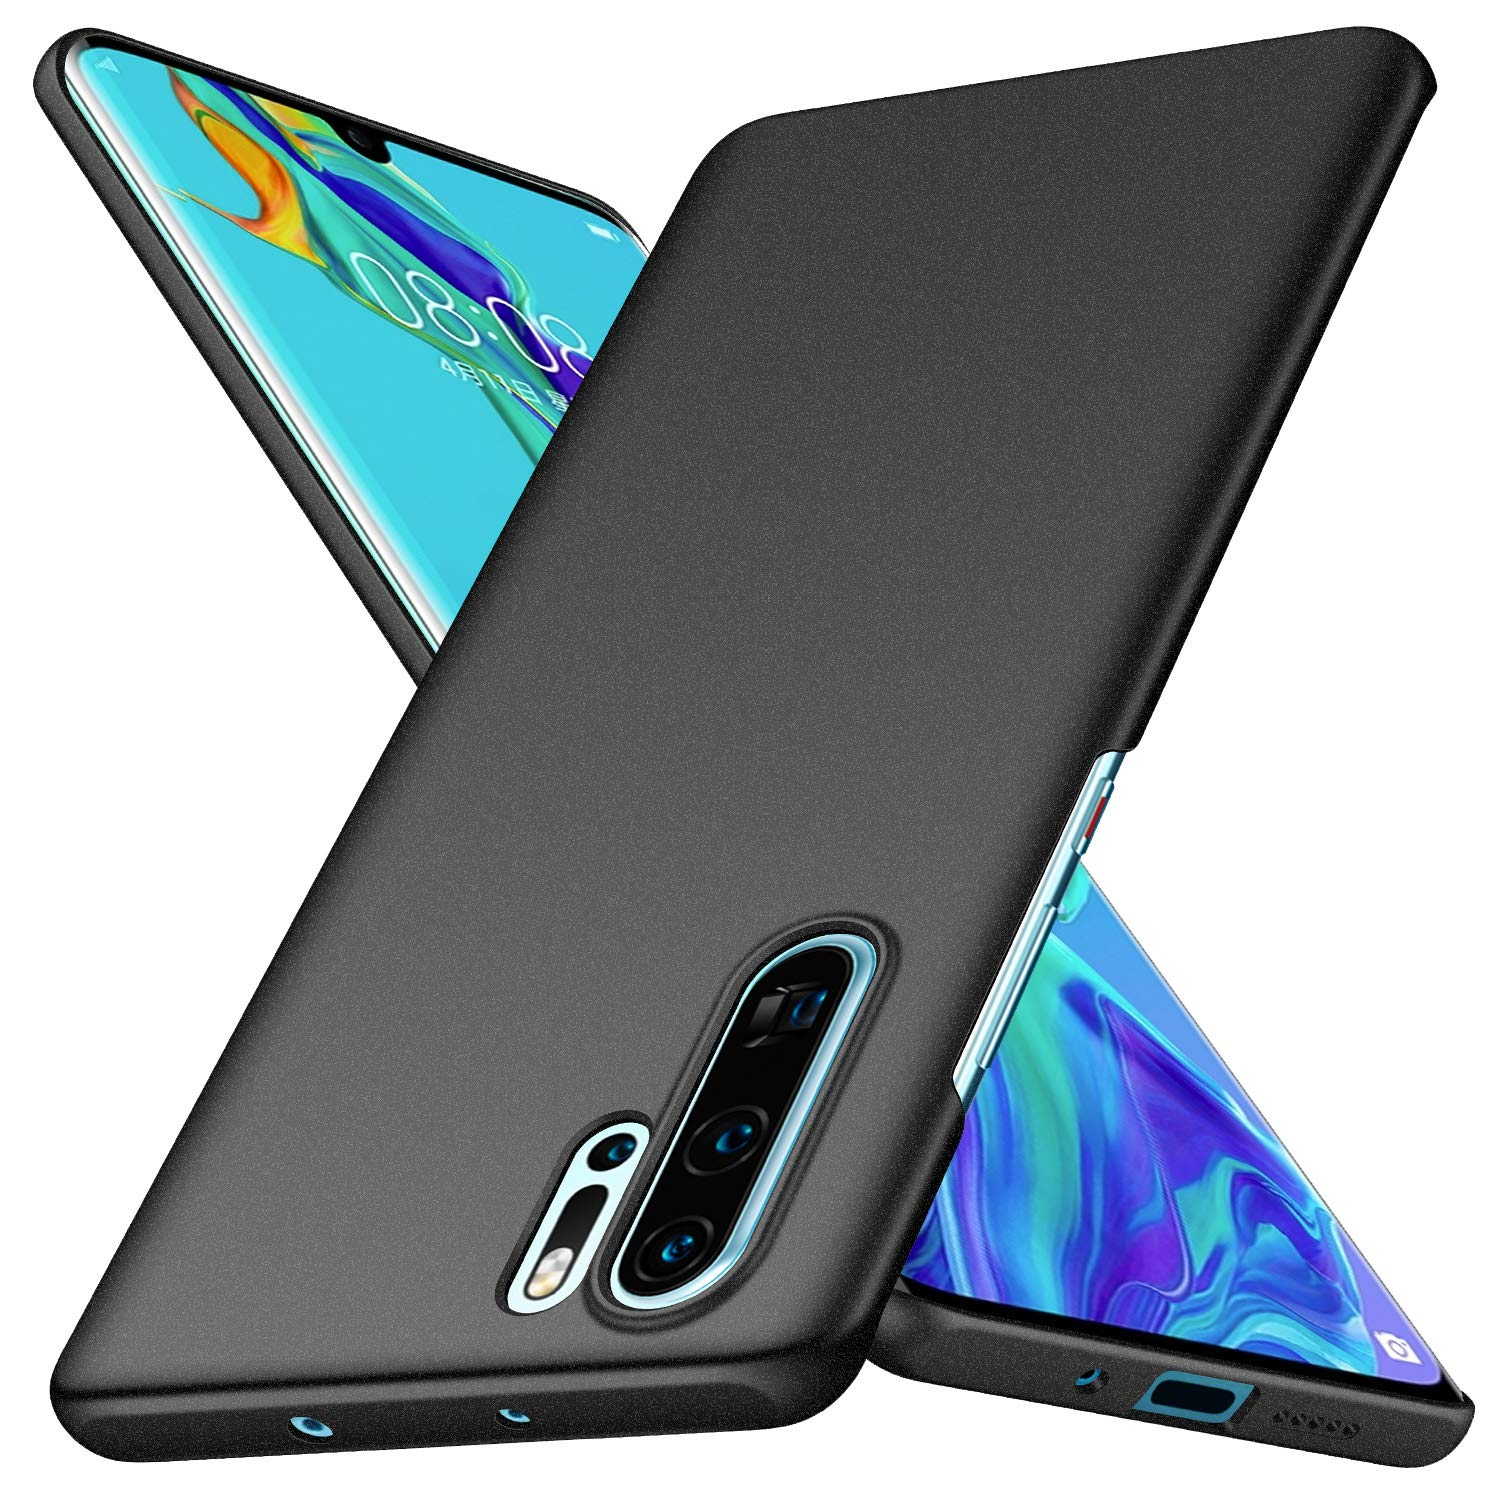 Arkour Huawei P30 Pro Case, Minimalist Ultra Thin Slim Fit Non-Slip Matte Surface Hard PC Cover for Huawei P30 Pro (Gravel Black)